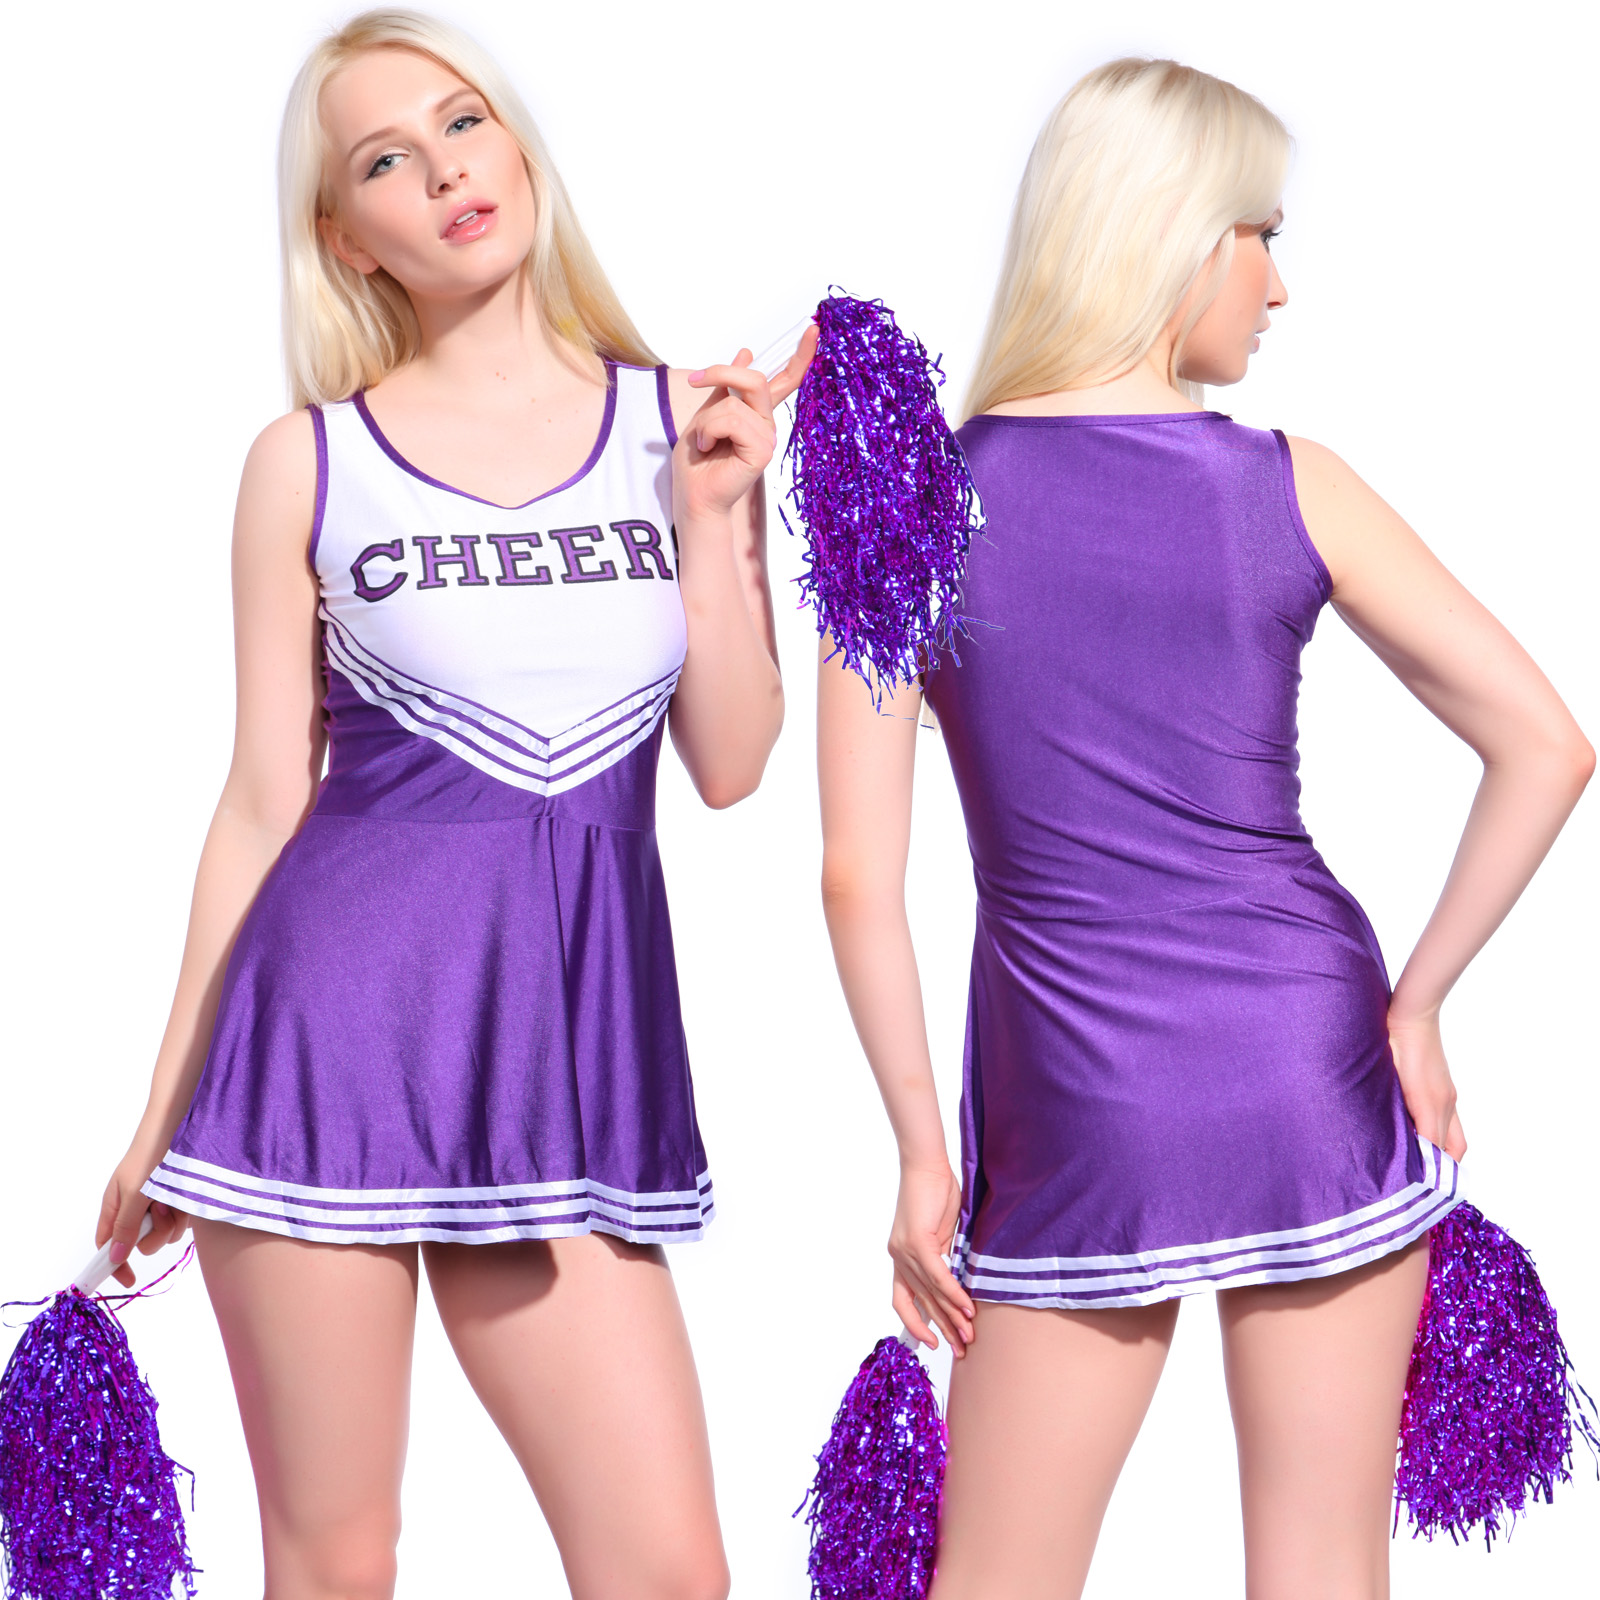 naked girls in cheerleading uniforms